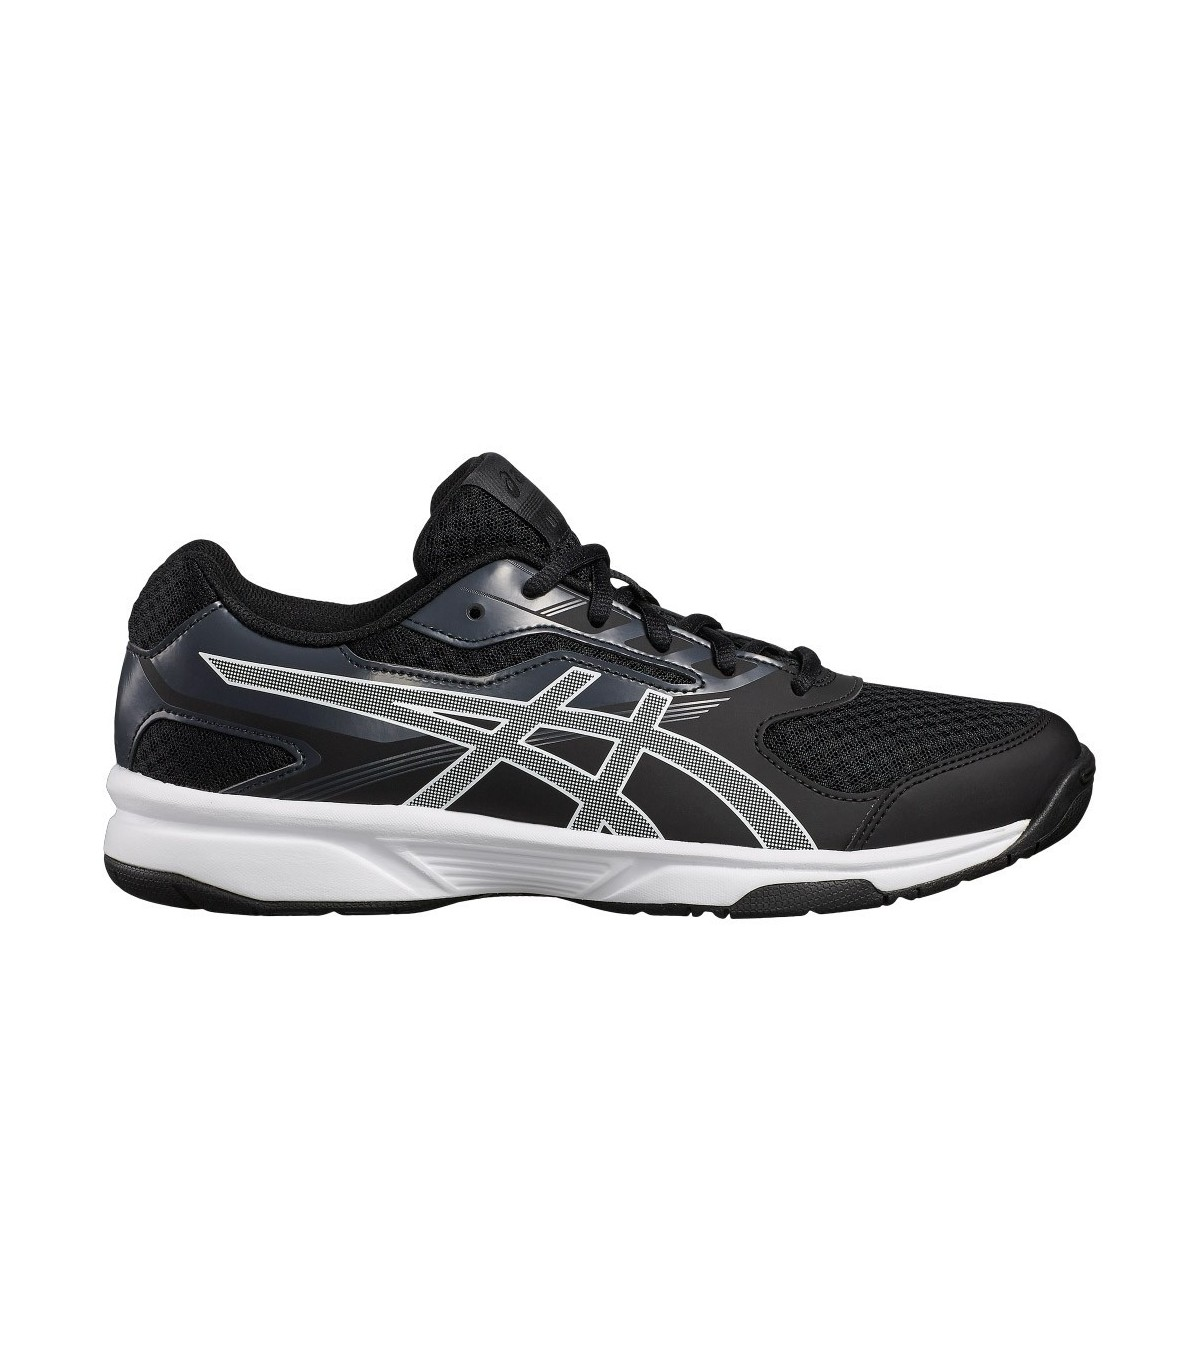 Asics UpCourt 2 Classic Men Squash Shoes – Black   Grey  4be20aa6556b4